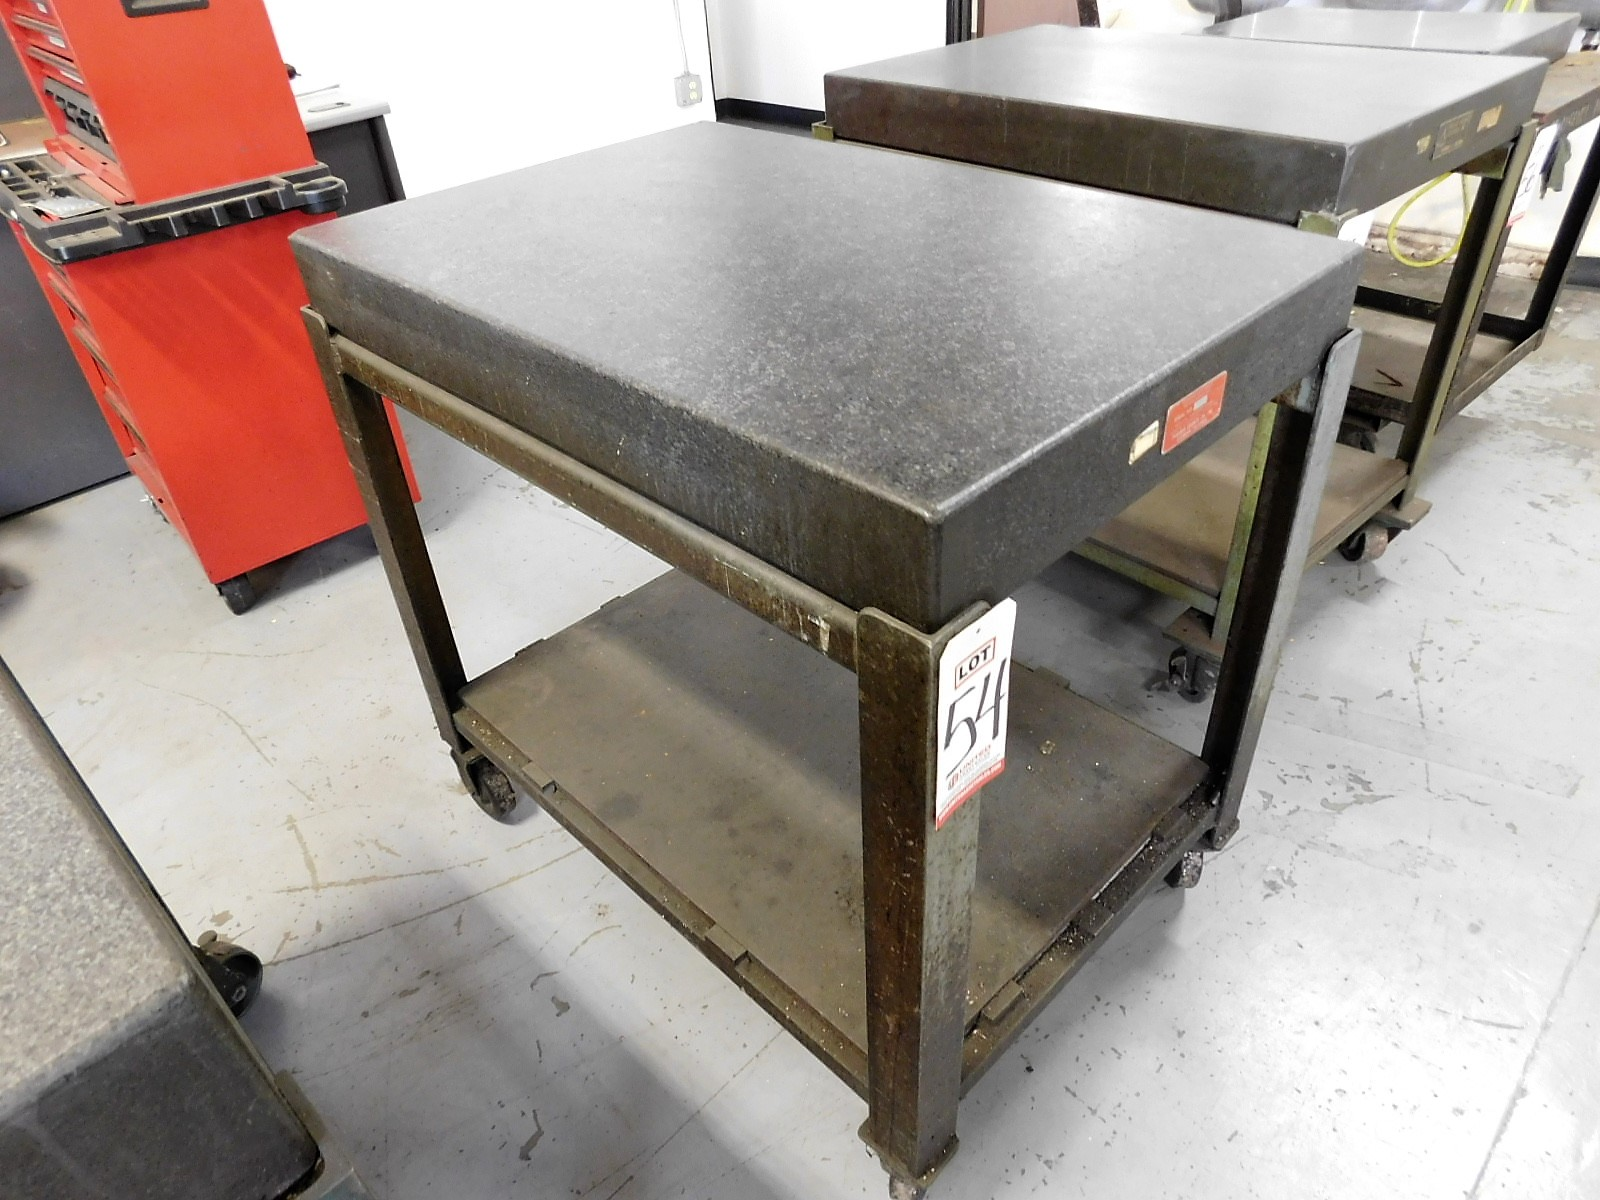 "Lot 54 - GRANITE SURFACE PLATE, 24"" X 36"" X 4"", W/ ROLLING STAND, 36"" WORK HEIGHT"